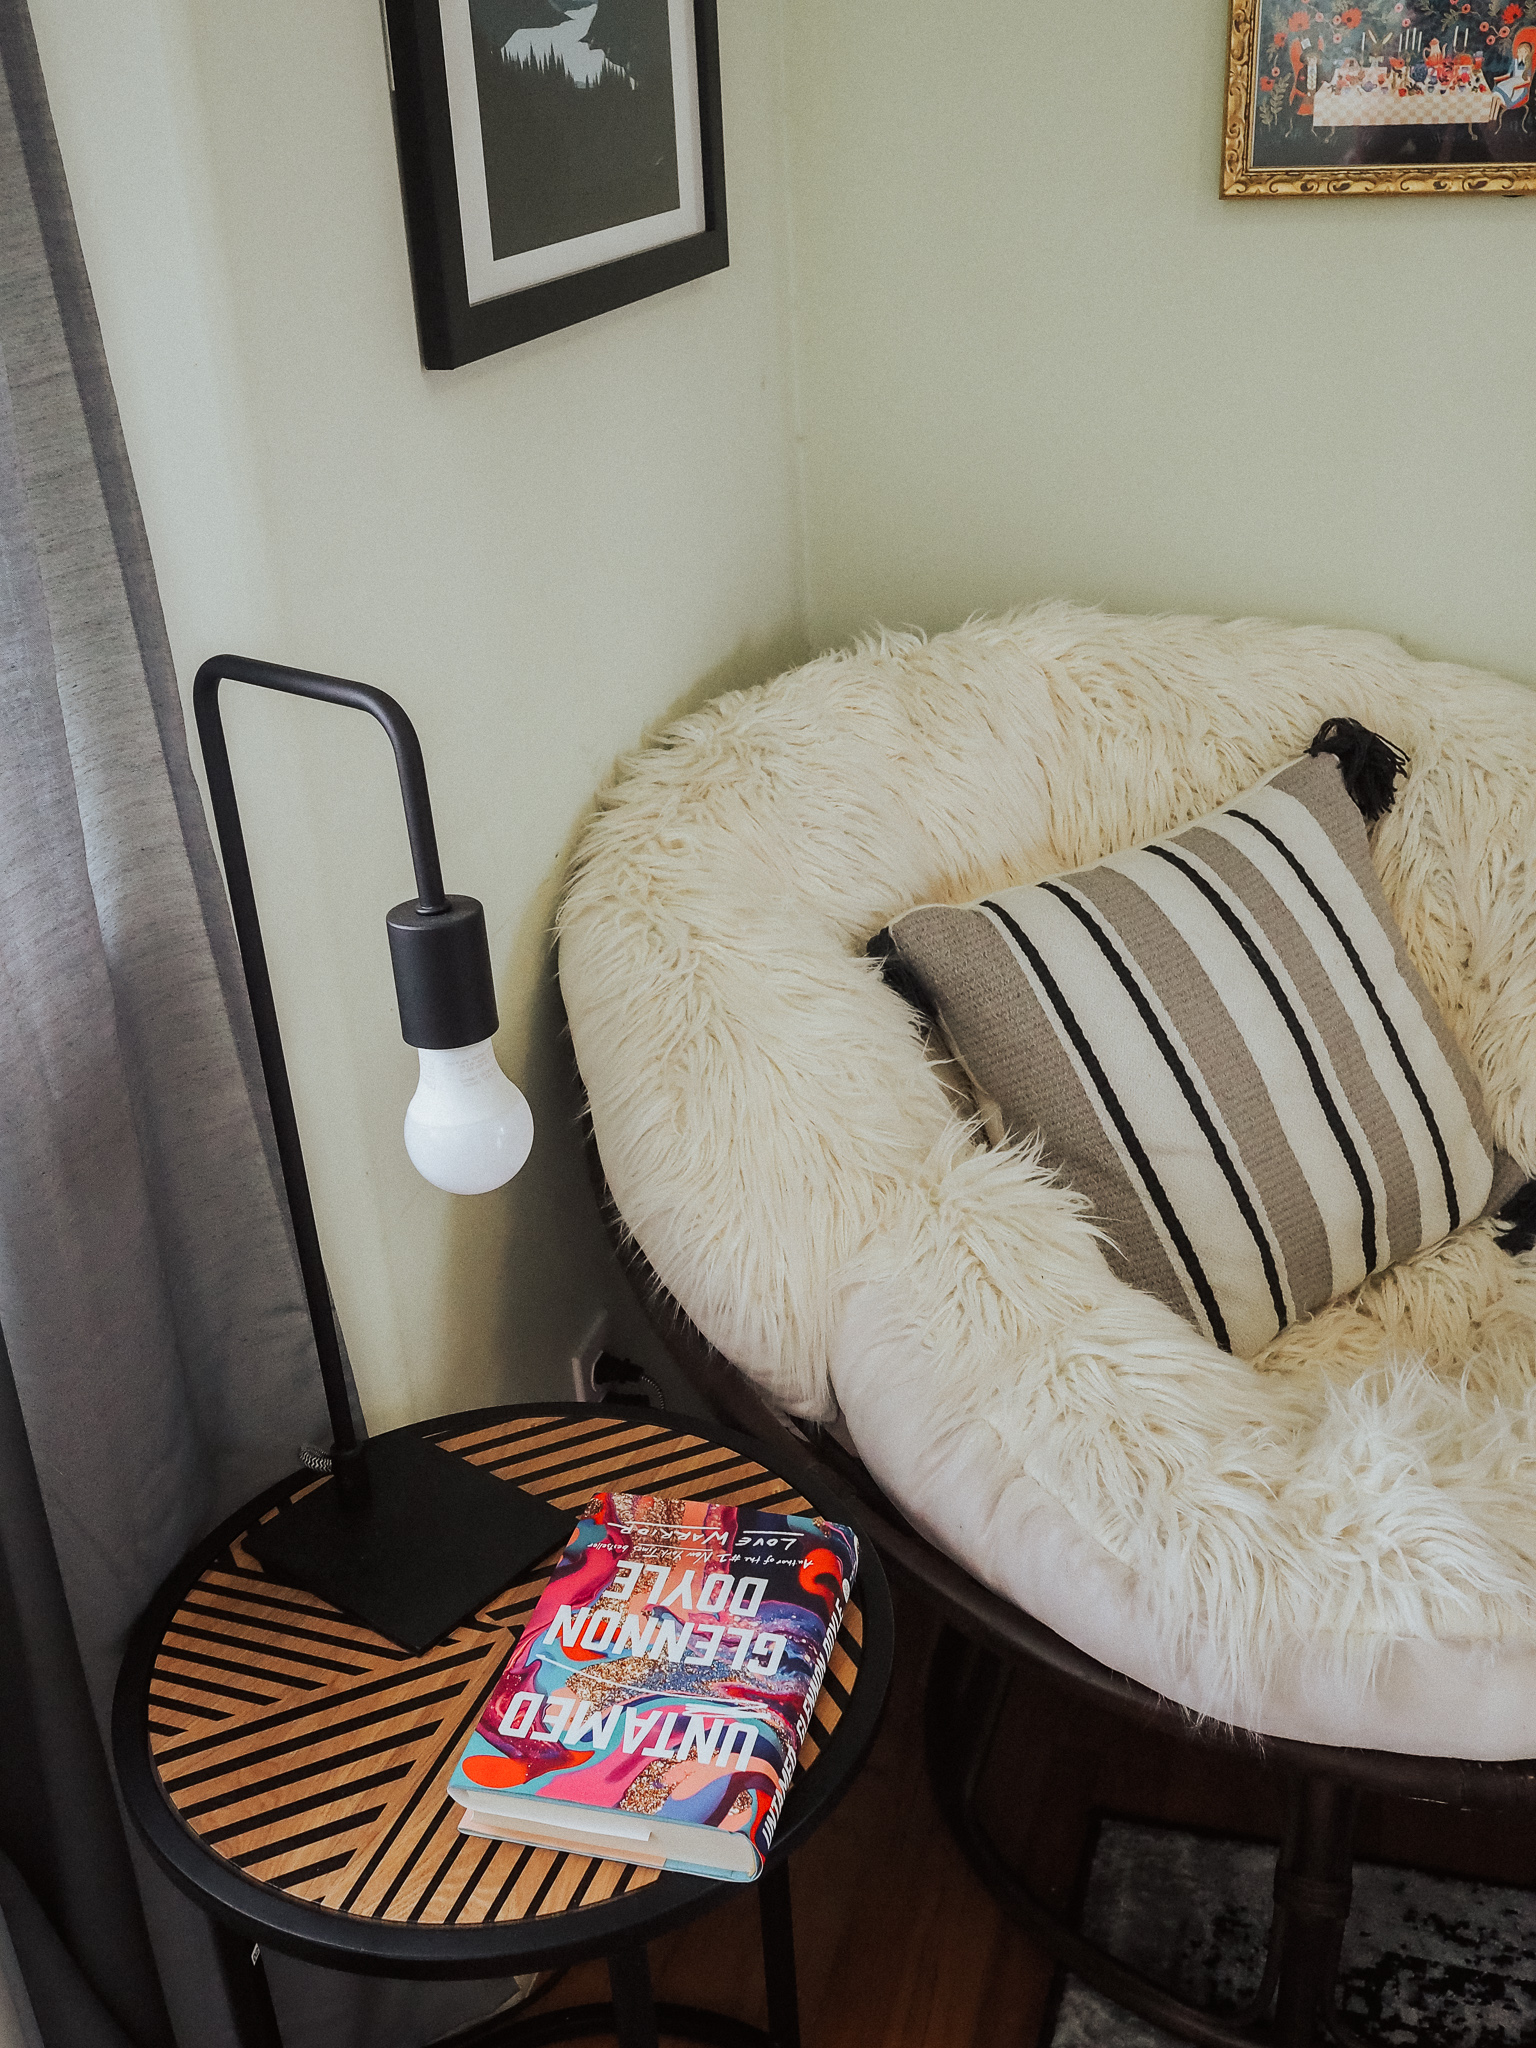 Looking for reading nook inspiration? Look no further. Kelsey from Blondes & Bagels shares her cozy reading corner in this handy how to blog post.